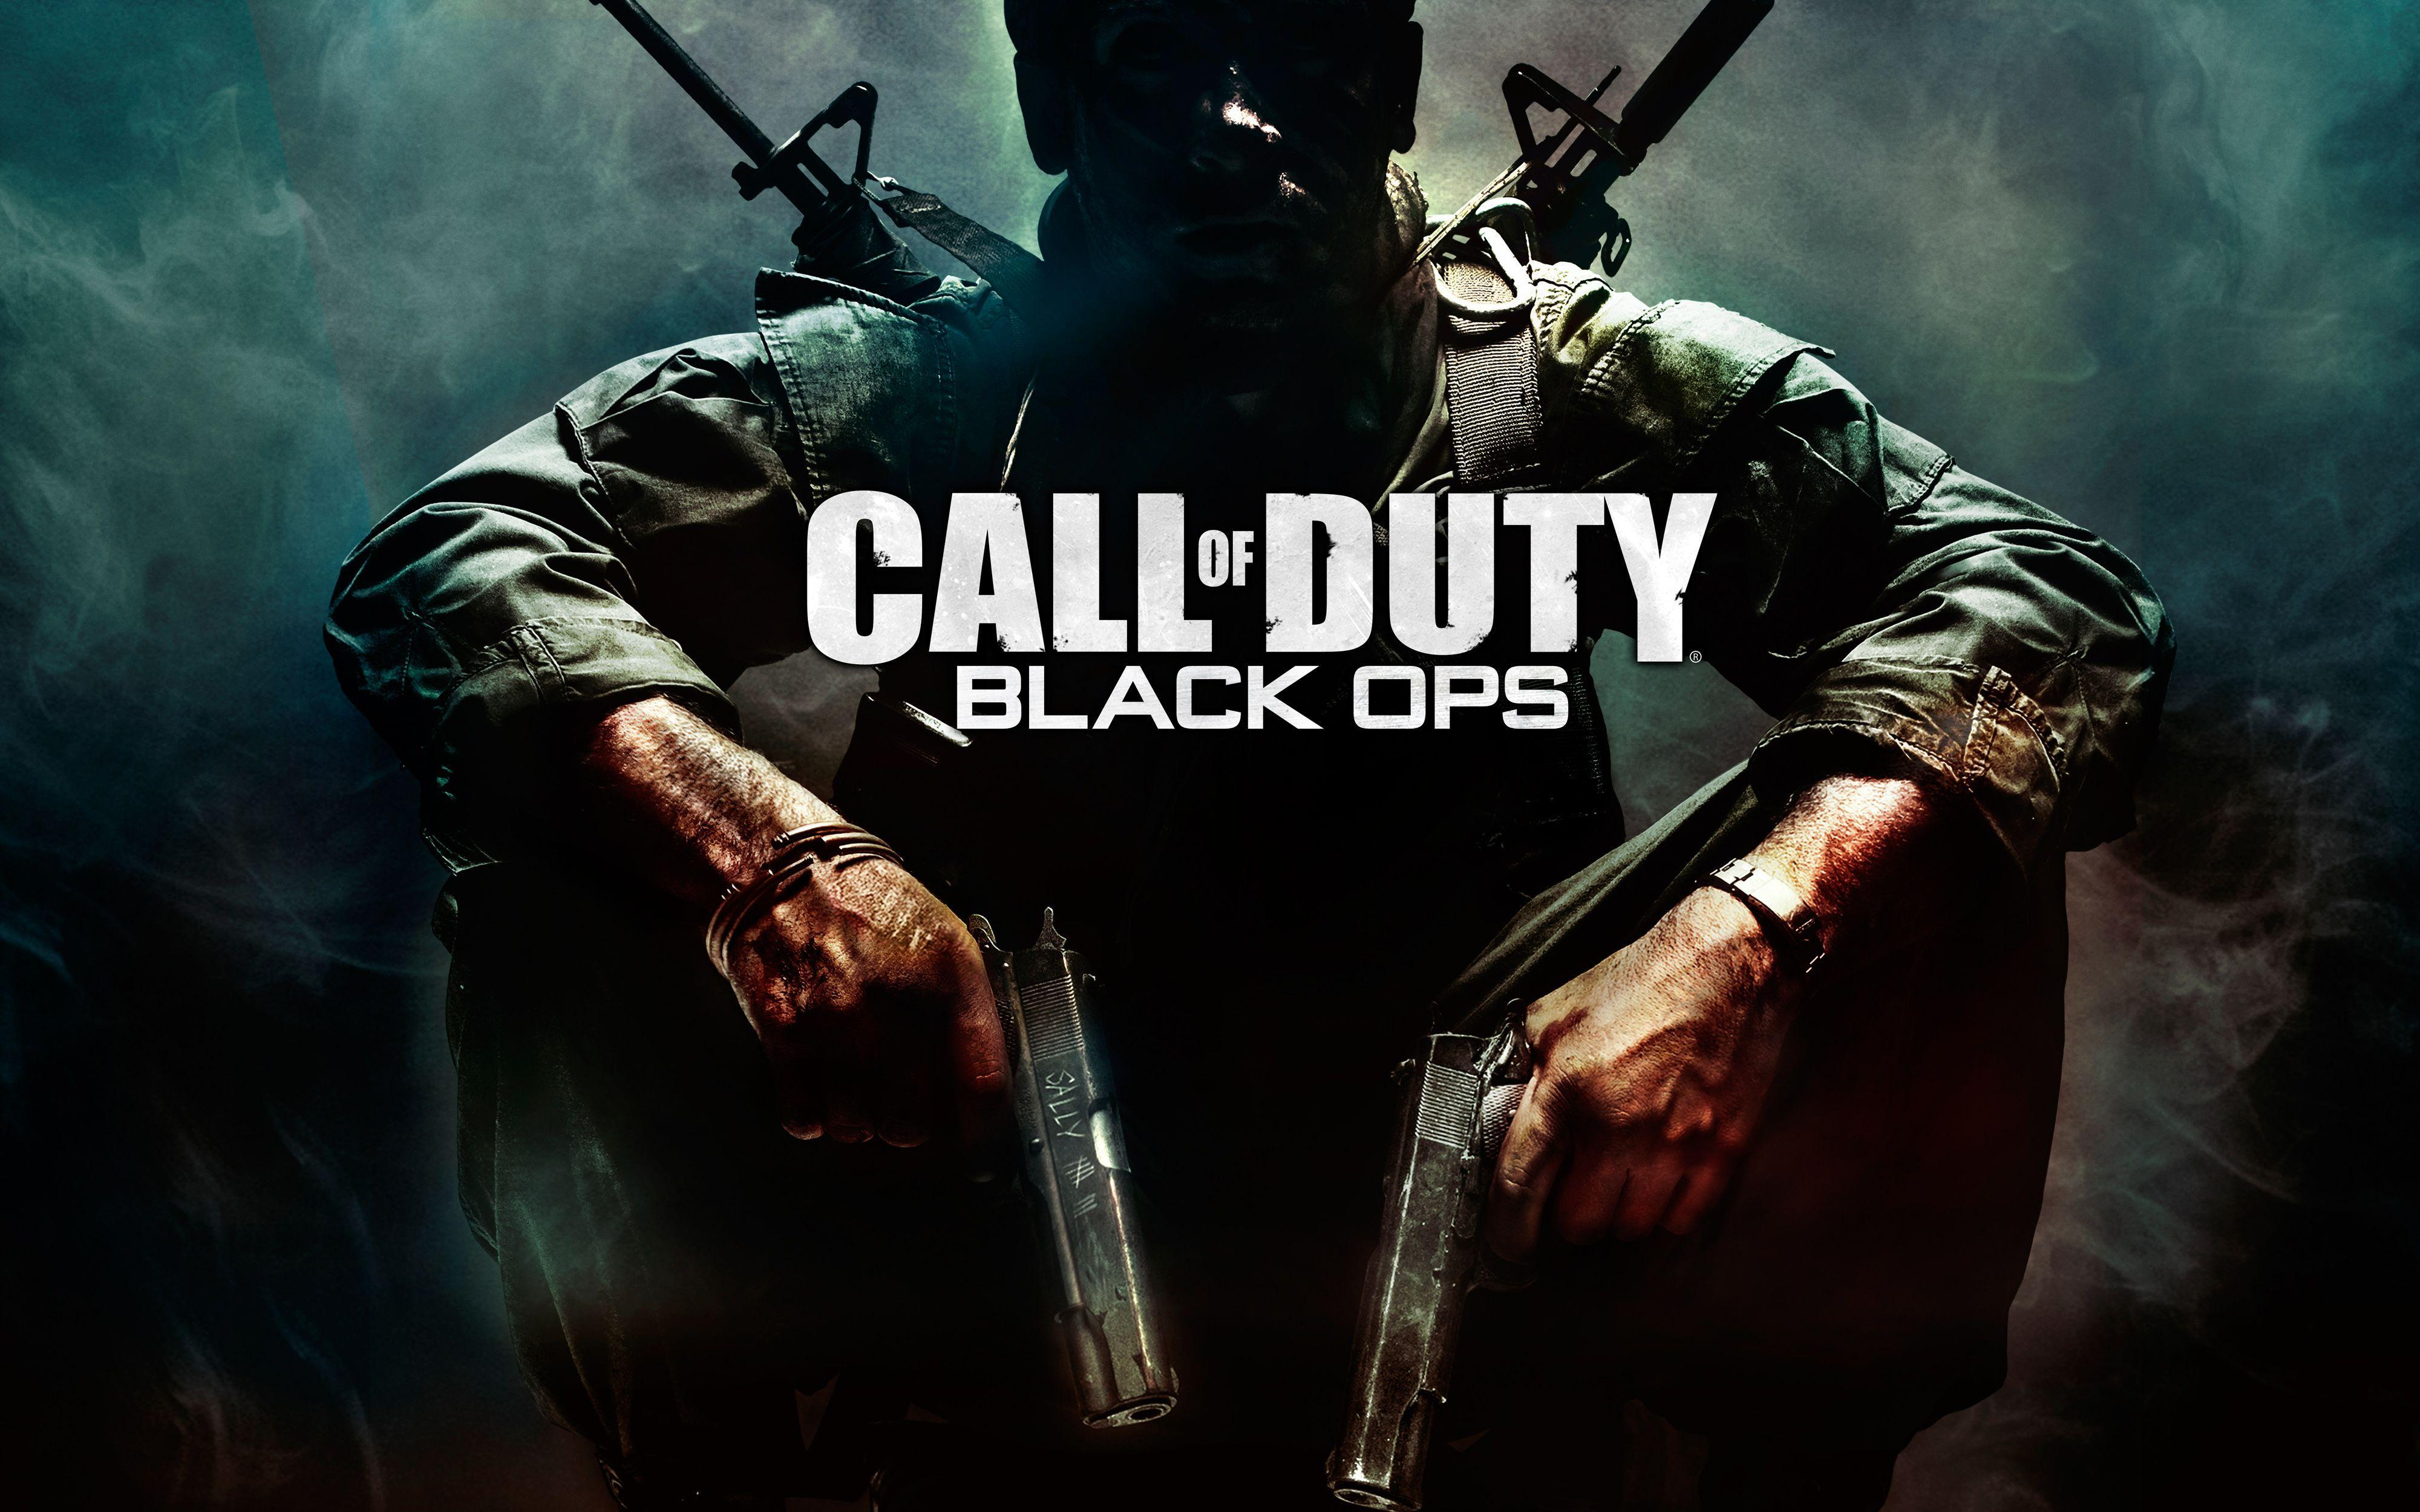 Call Of Duty Black Ops 2 Zombies Wallpaper Posted By Ethan Anderson